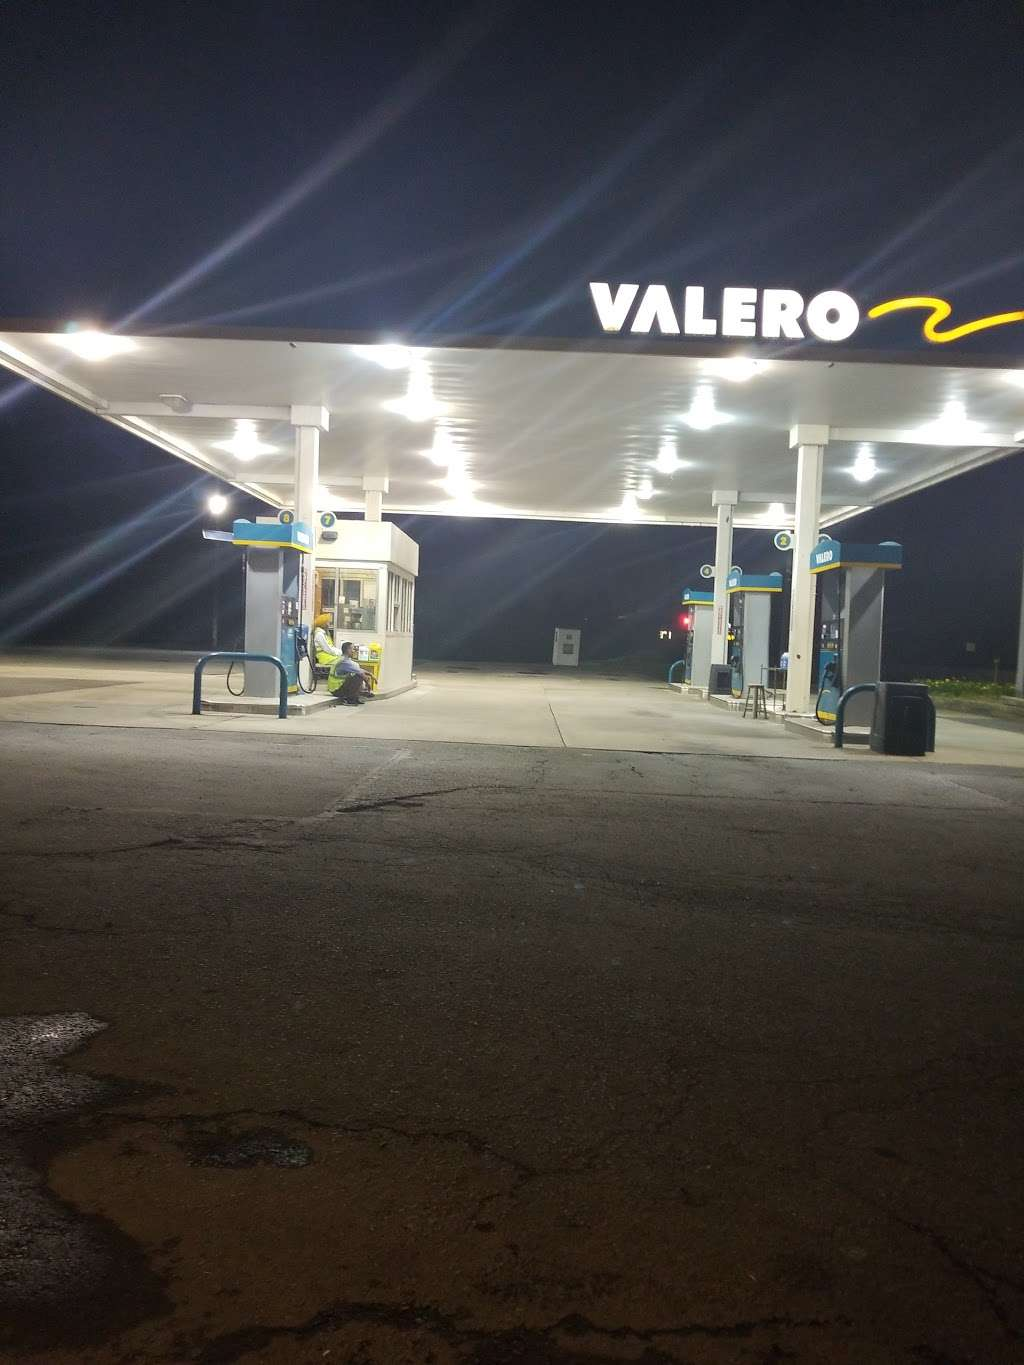 Valero - gas station  | Photo 1 of 3 | Address: 3817 Deans Ln, Monmouth Junction, NJ 08852, USA | Phone: (732) 297-9540